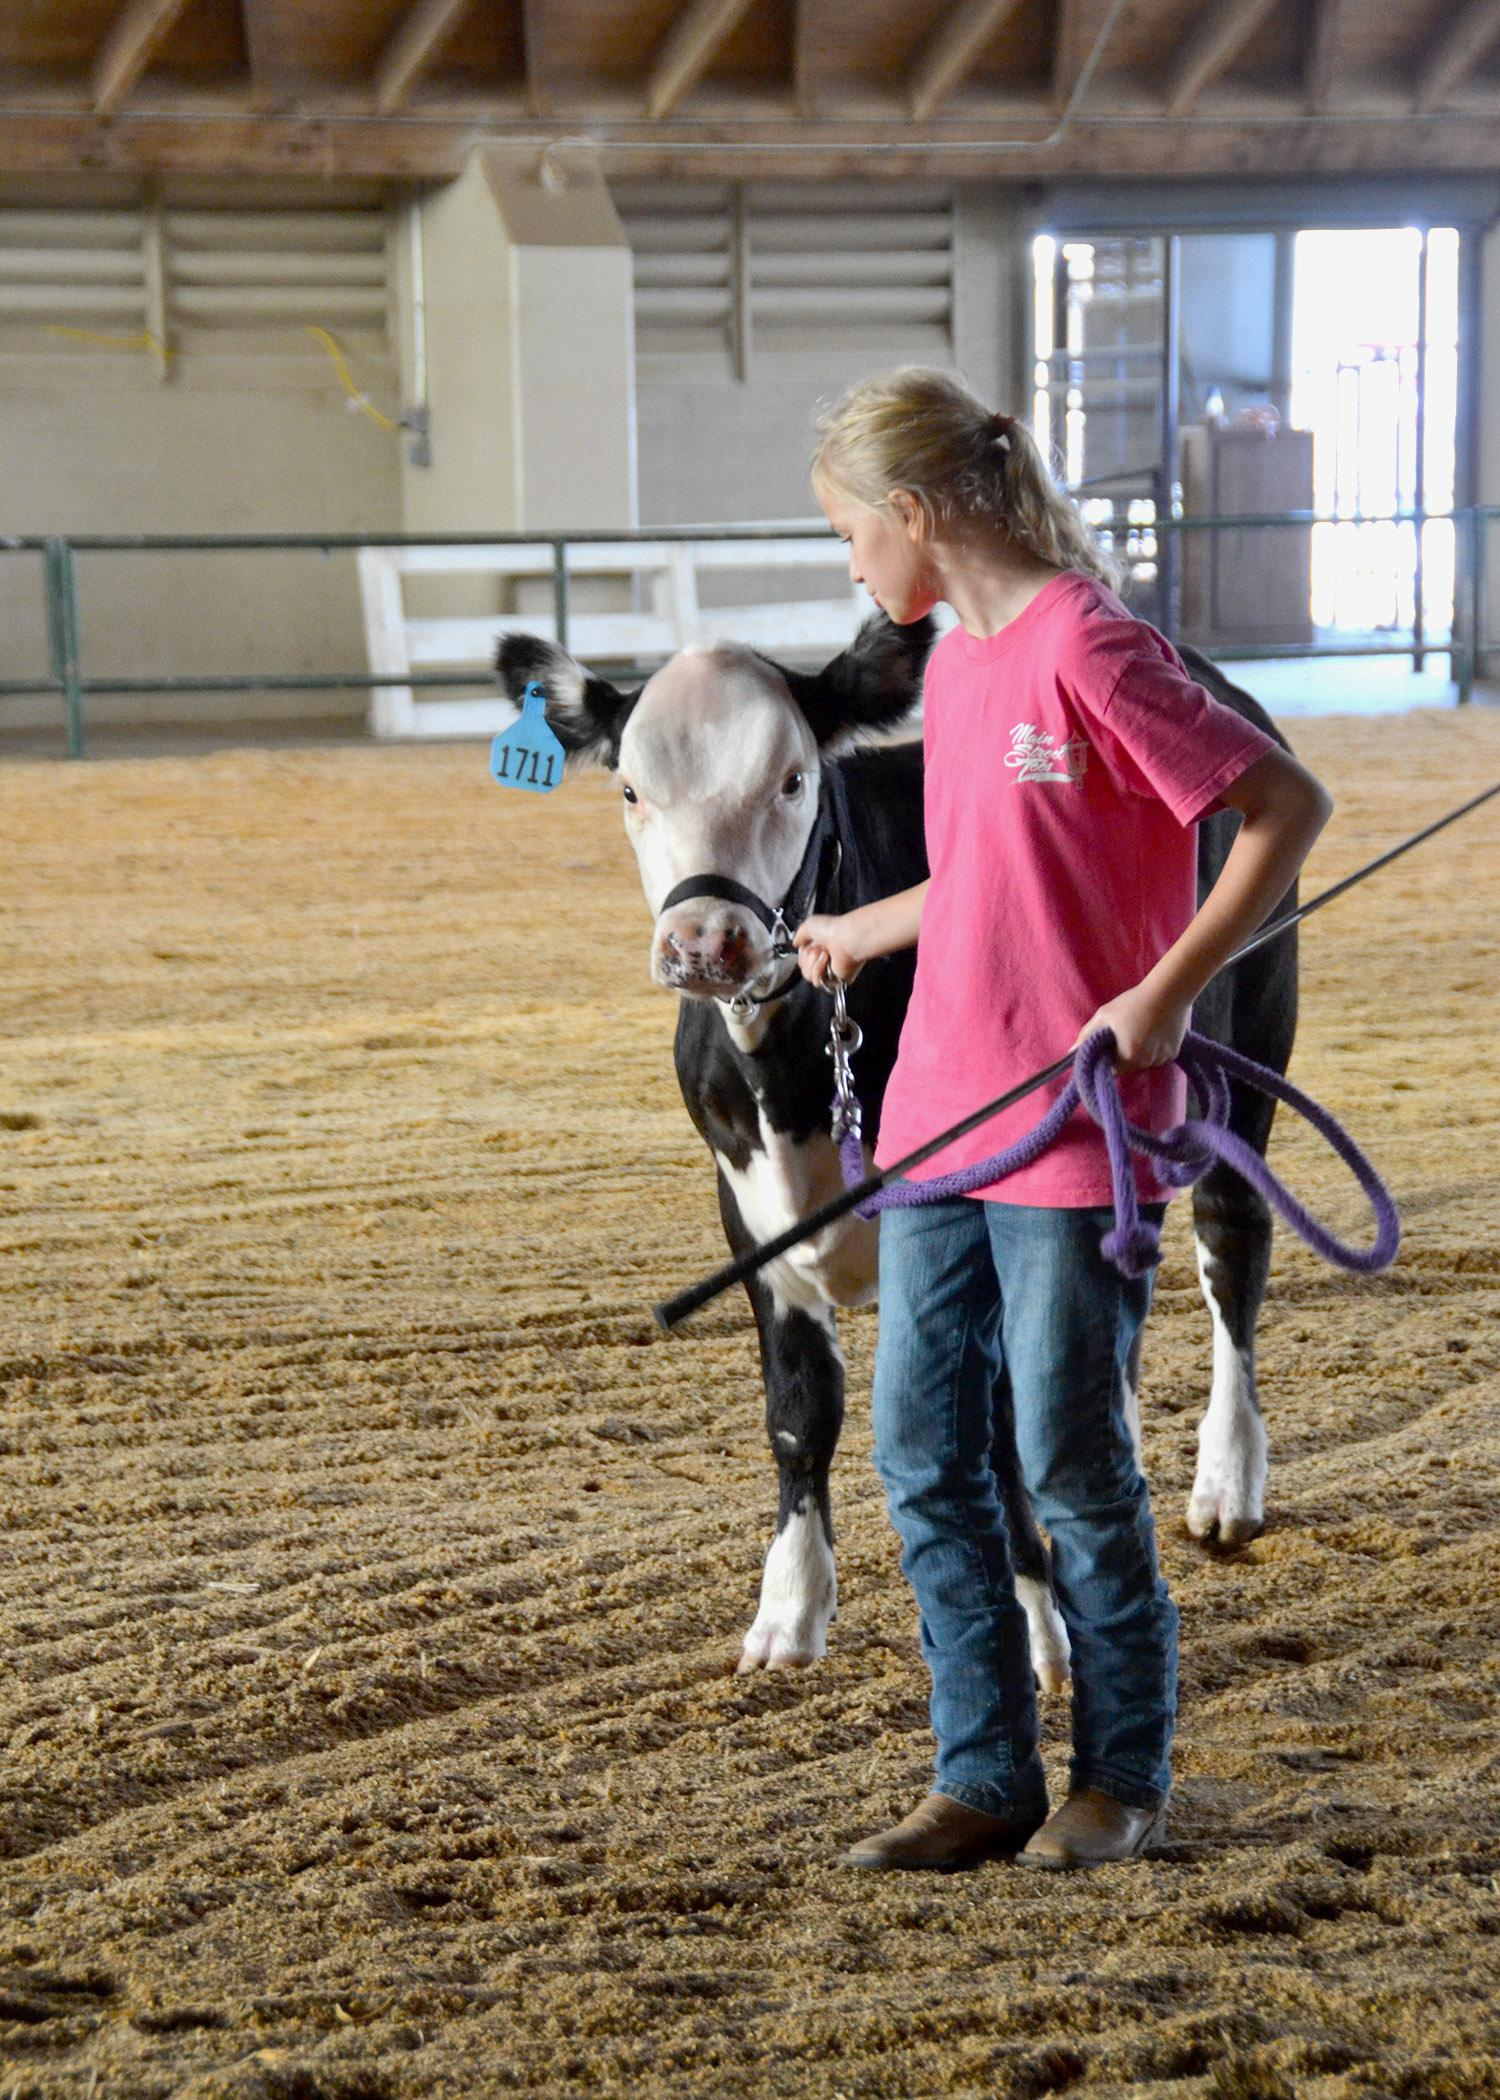 Simpson County 4-H'er Madisyn Lee prepares for the beef showmanship competition at the Mississippi State Fair with a few practice rounds in the ring Oct. 4. (Photo by MSU Ag Communications/Susan Collins-Smith)